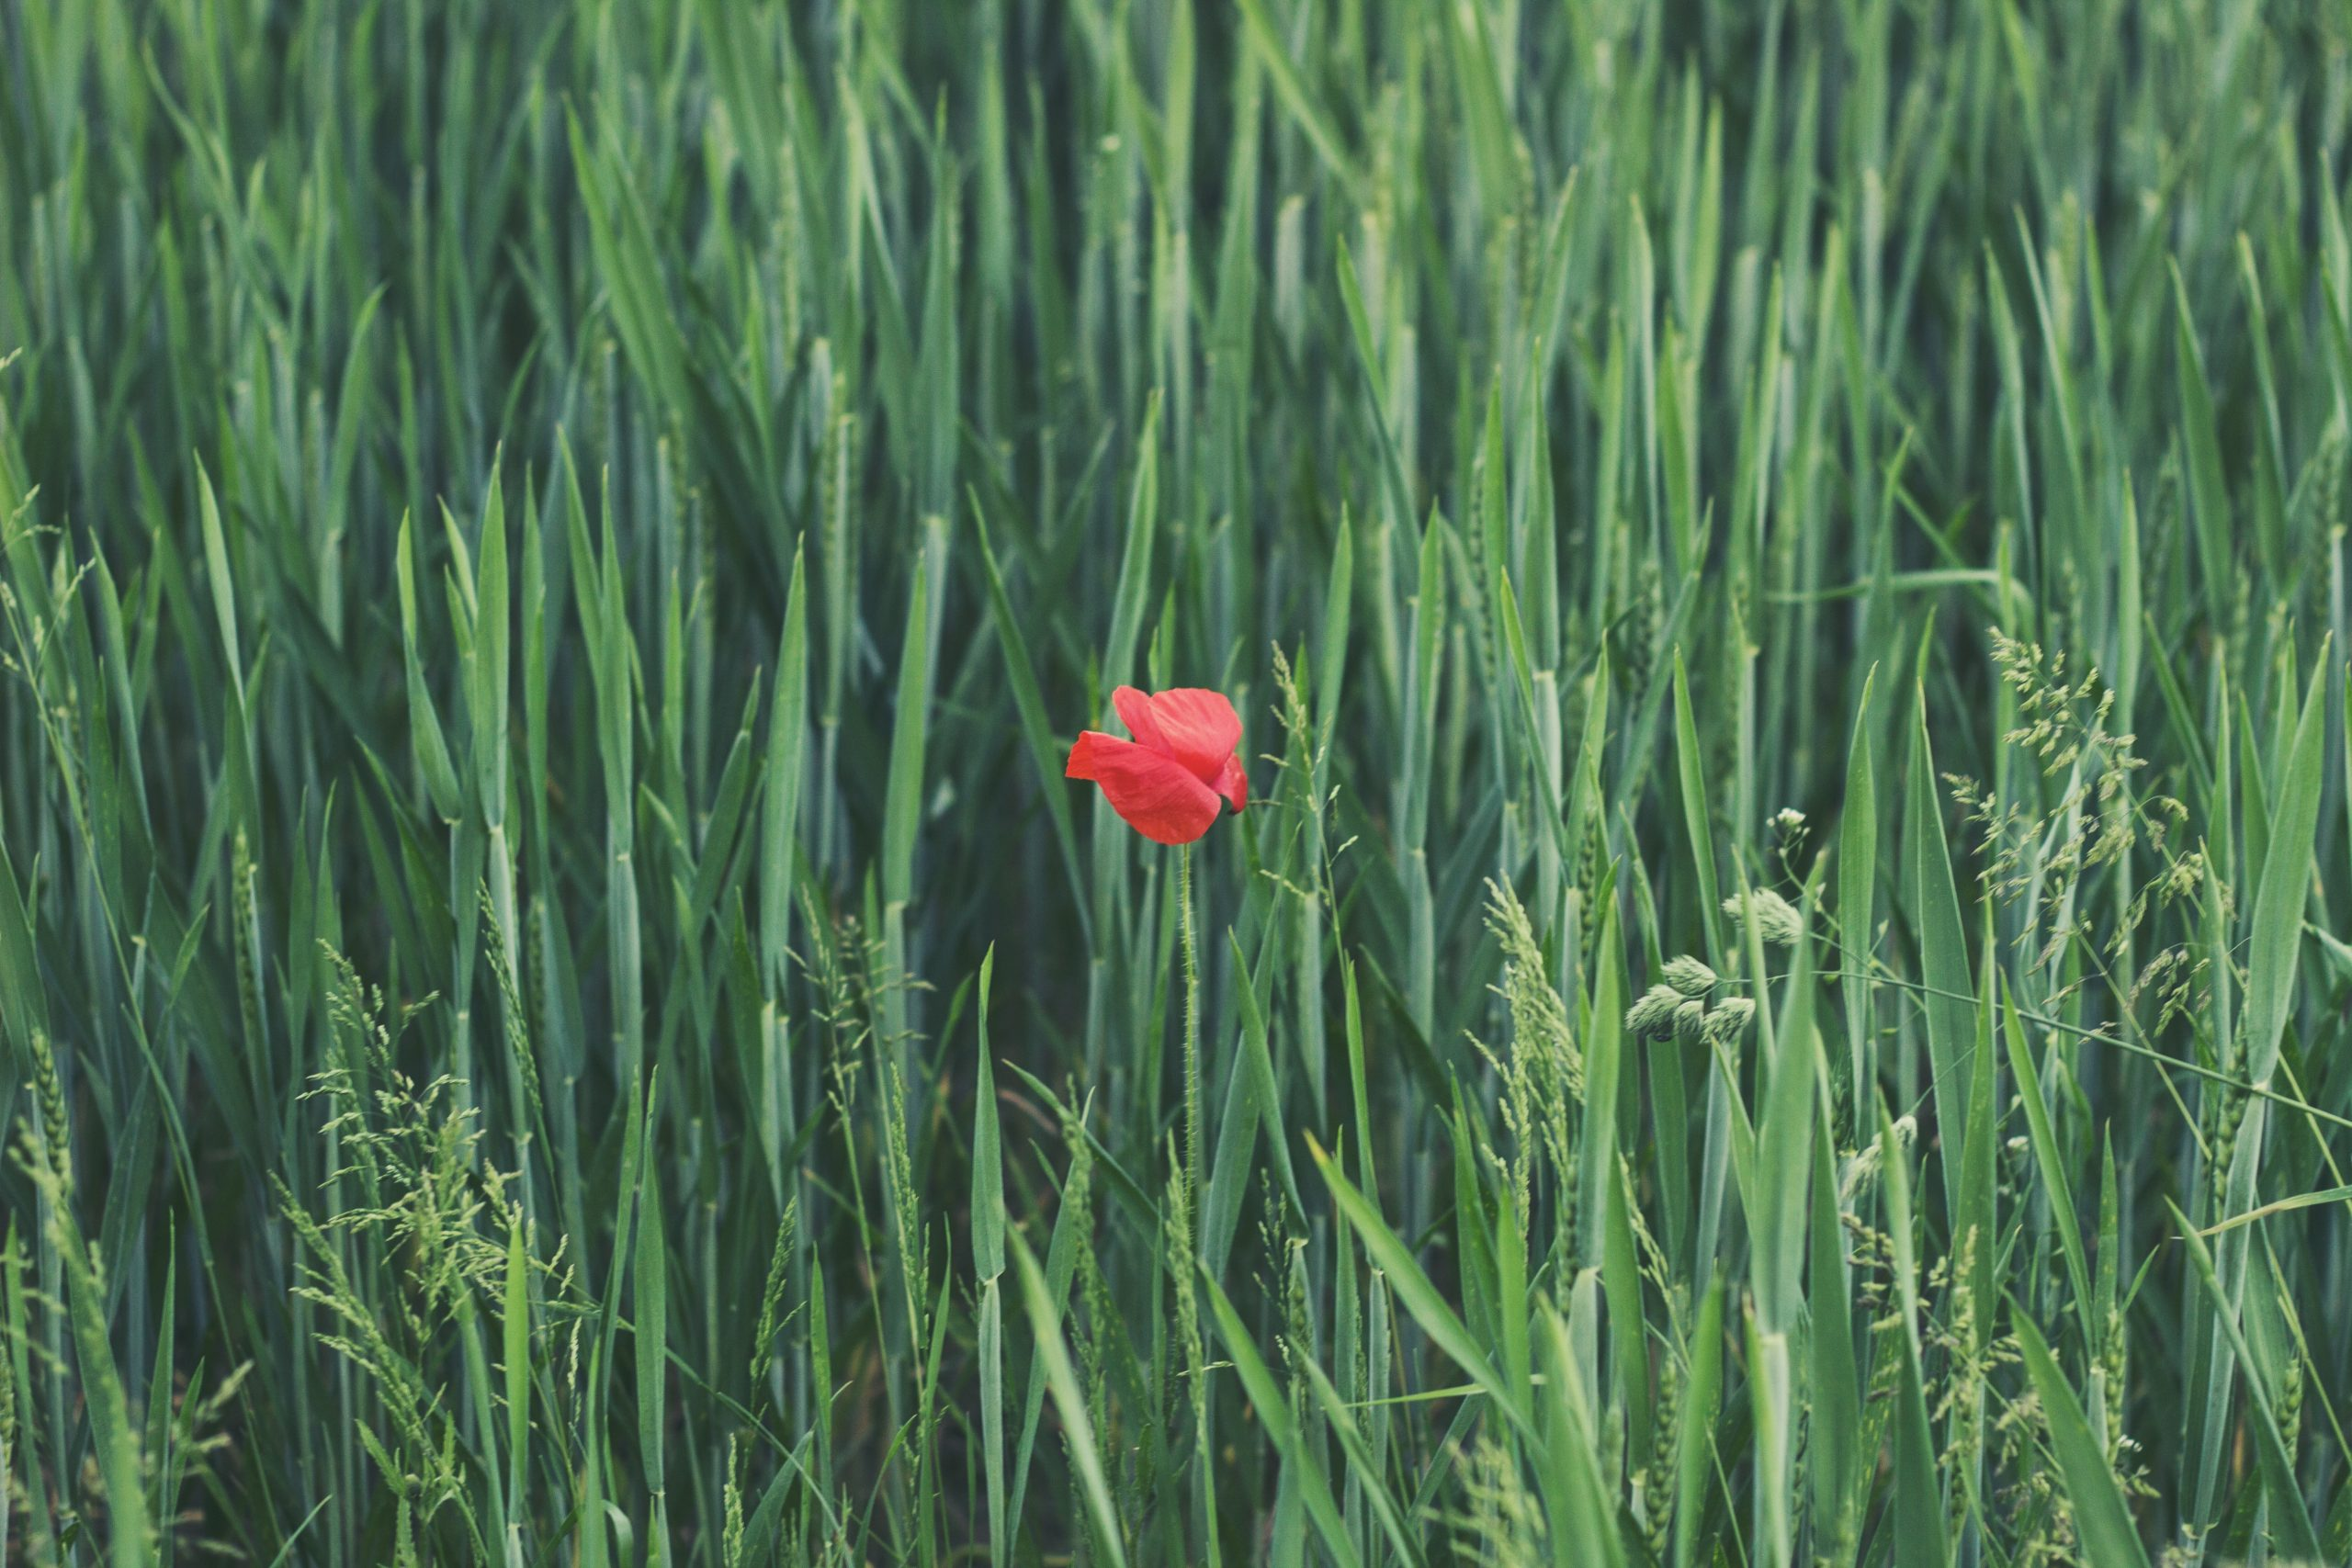 a single poppy surrounded by tall grass